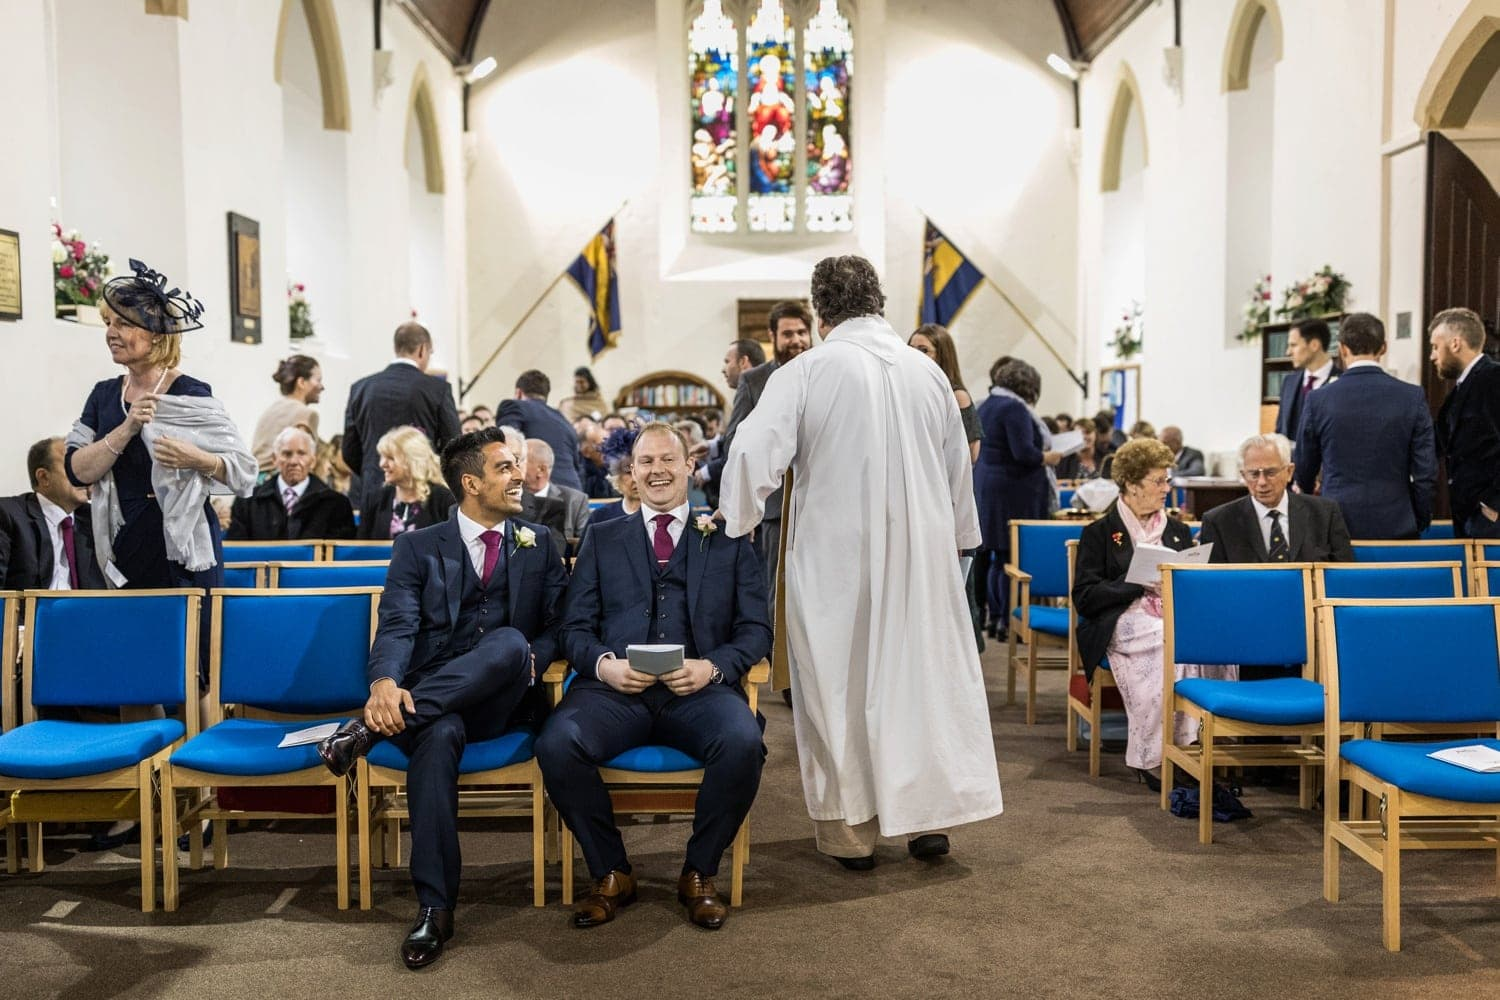 Marriage ceremony at St Anne's Church, Tonna